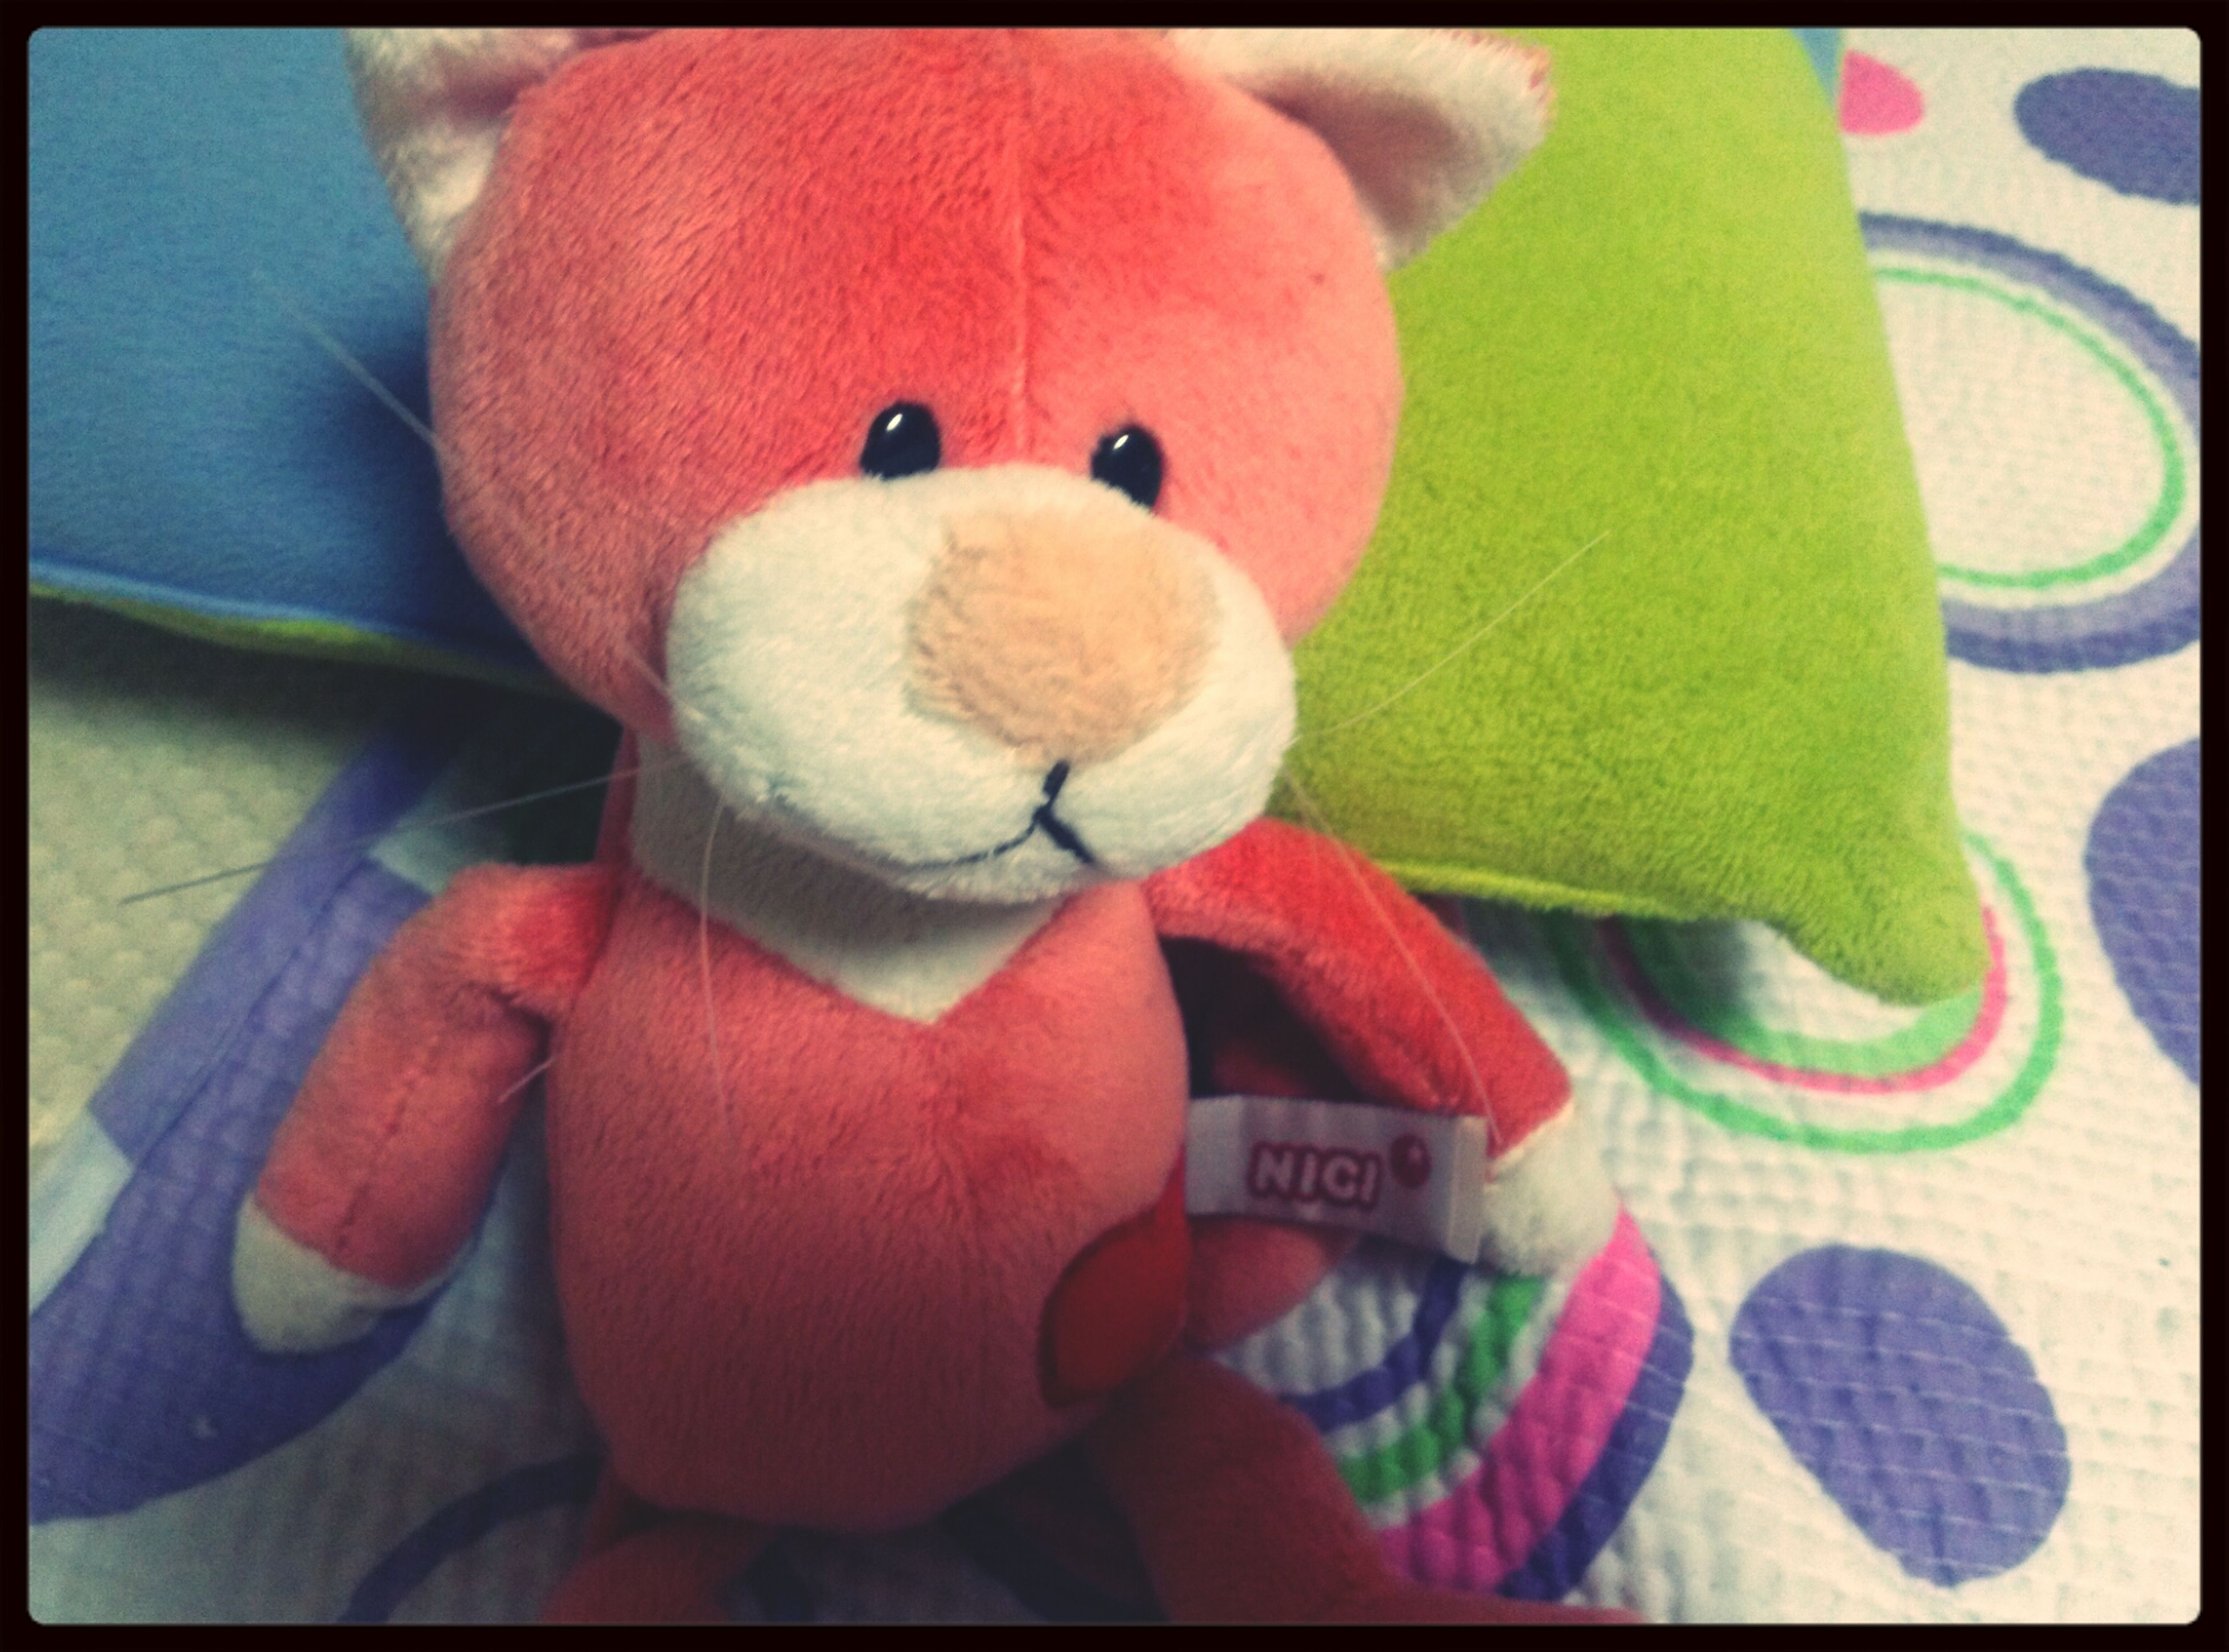 transfer print, indoors, auto post production filter, toy, close-up, animal representation, stuffed toy, art, still life, art and craft, creativity, childhood, no people, multi colored, human representation, home interior, teddy bear, high angle view, focus on foreground, pink color